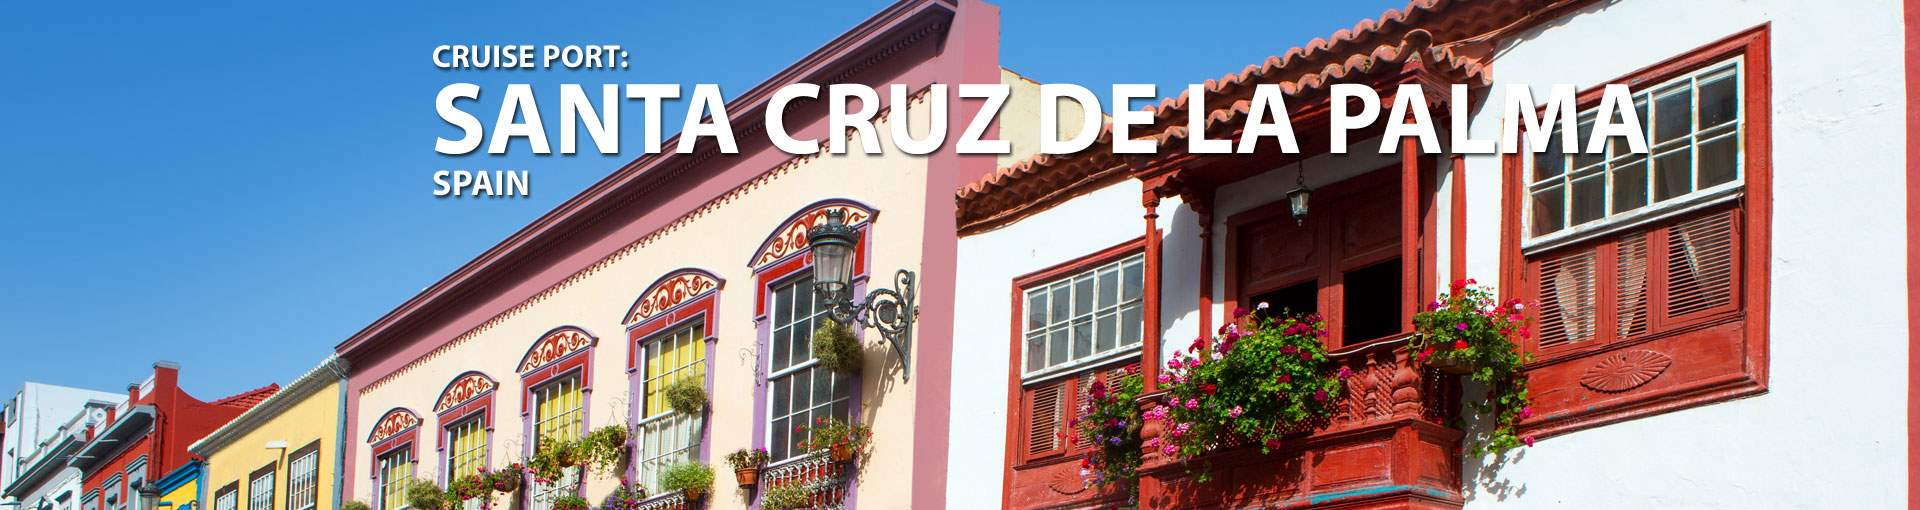 Cruises to Santa Cruz De La Palma, Spain